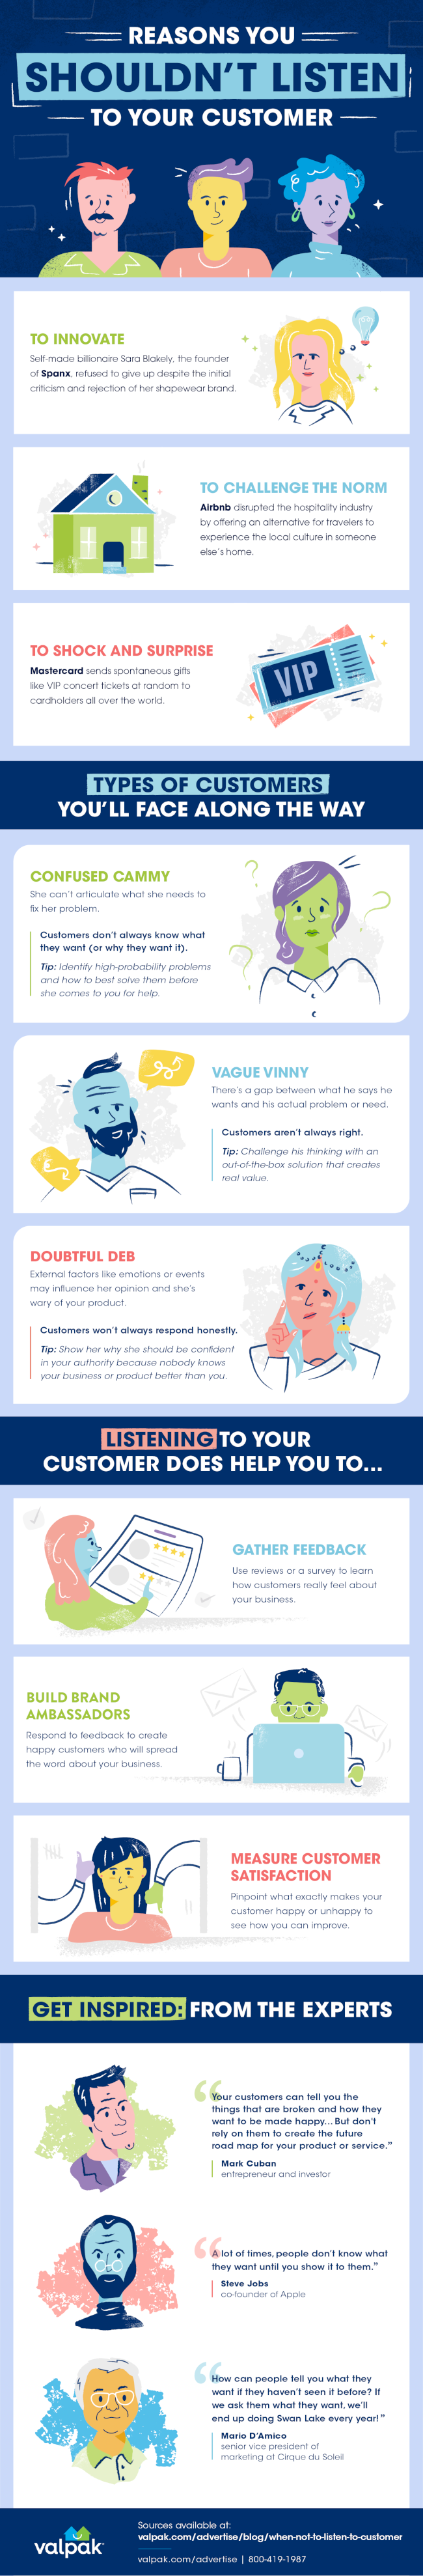 3 Reasons Why you Shouldn't Listen to Your Customer [Infographic]